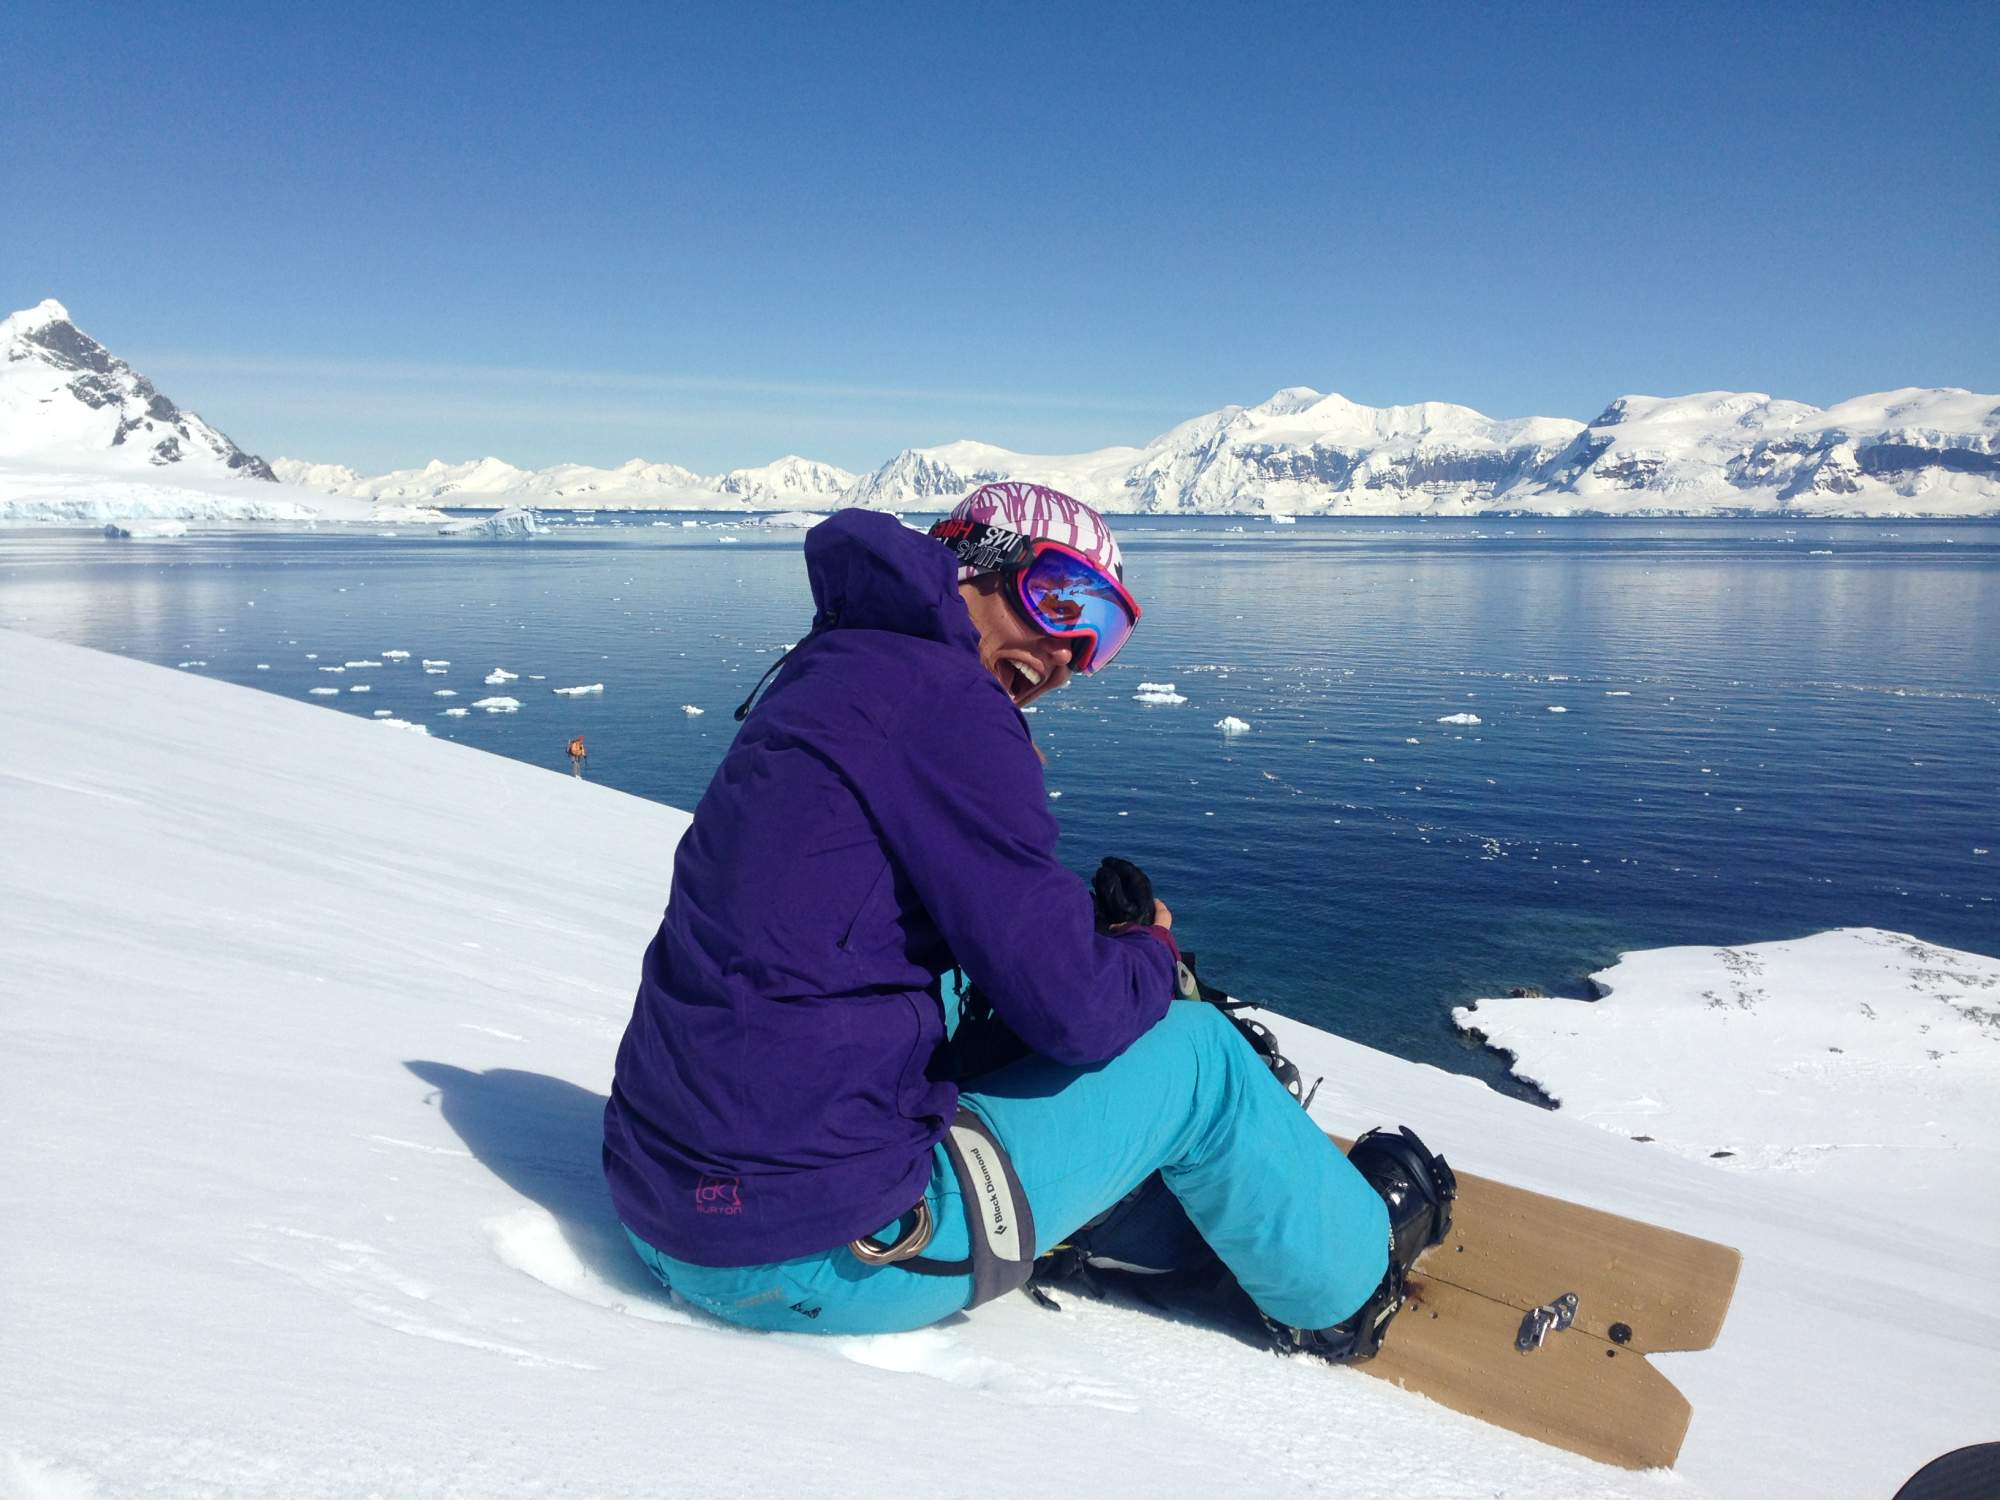 Snowboarding at the bottom of the world southern for Can anyone visit antarctica